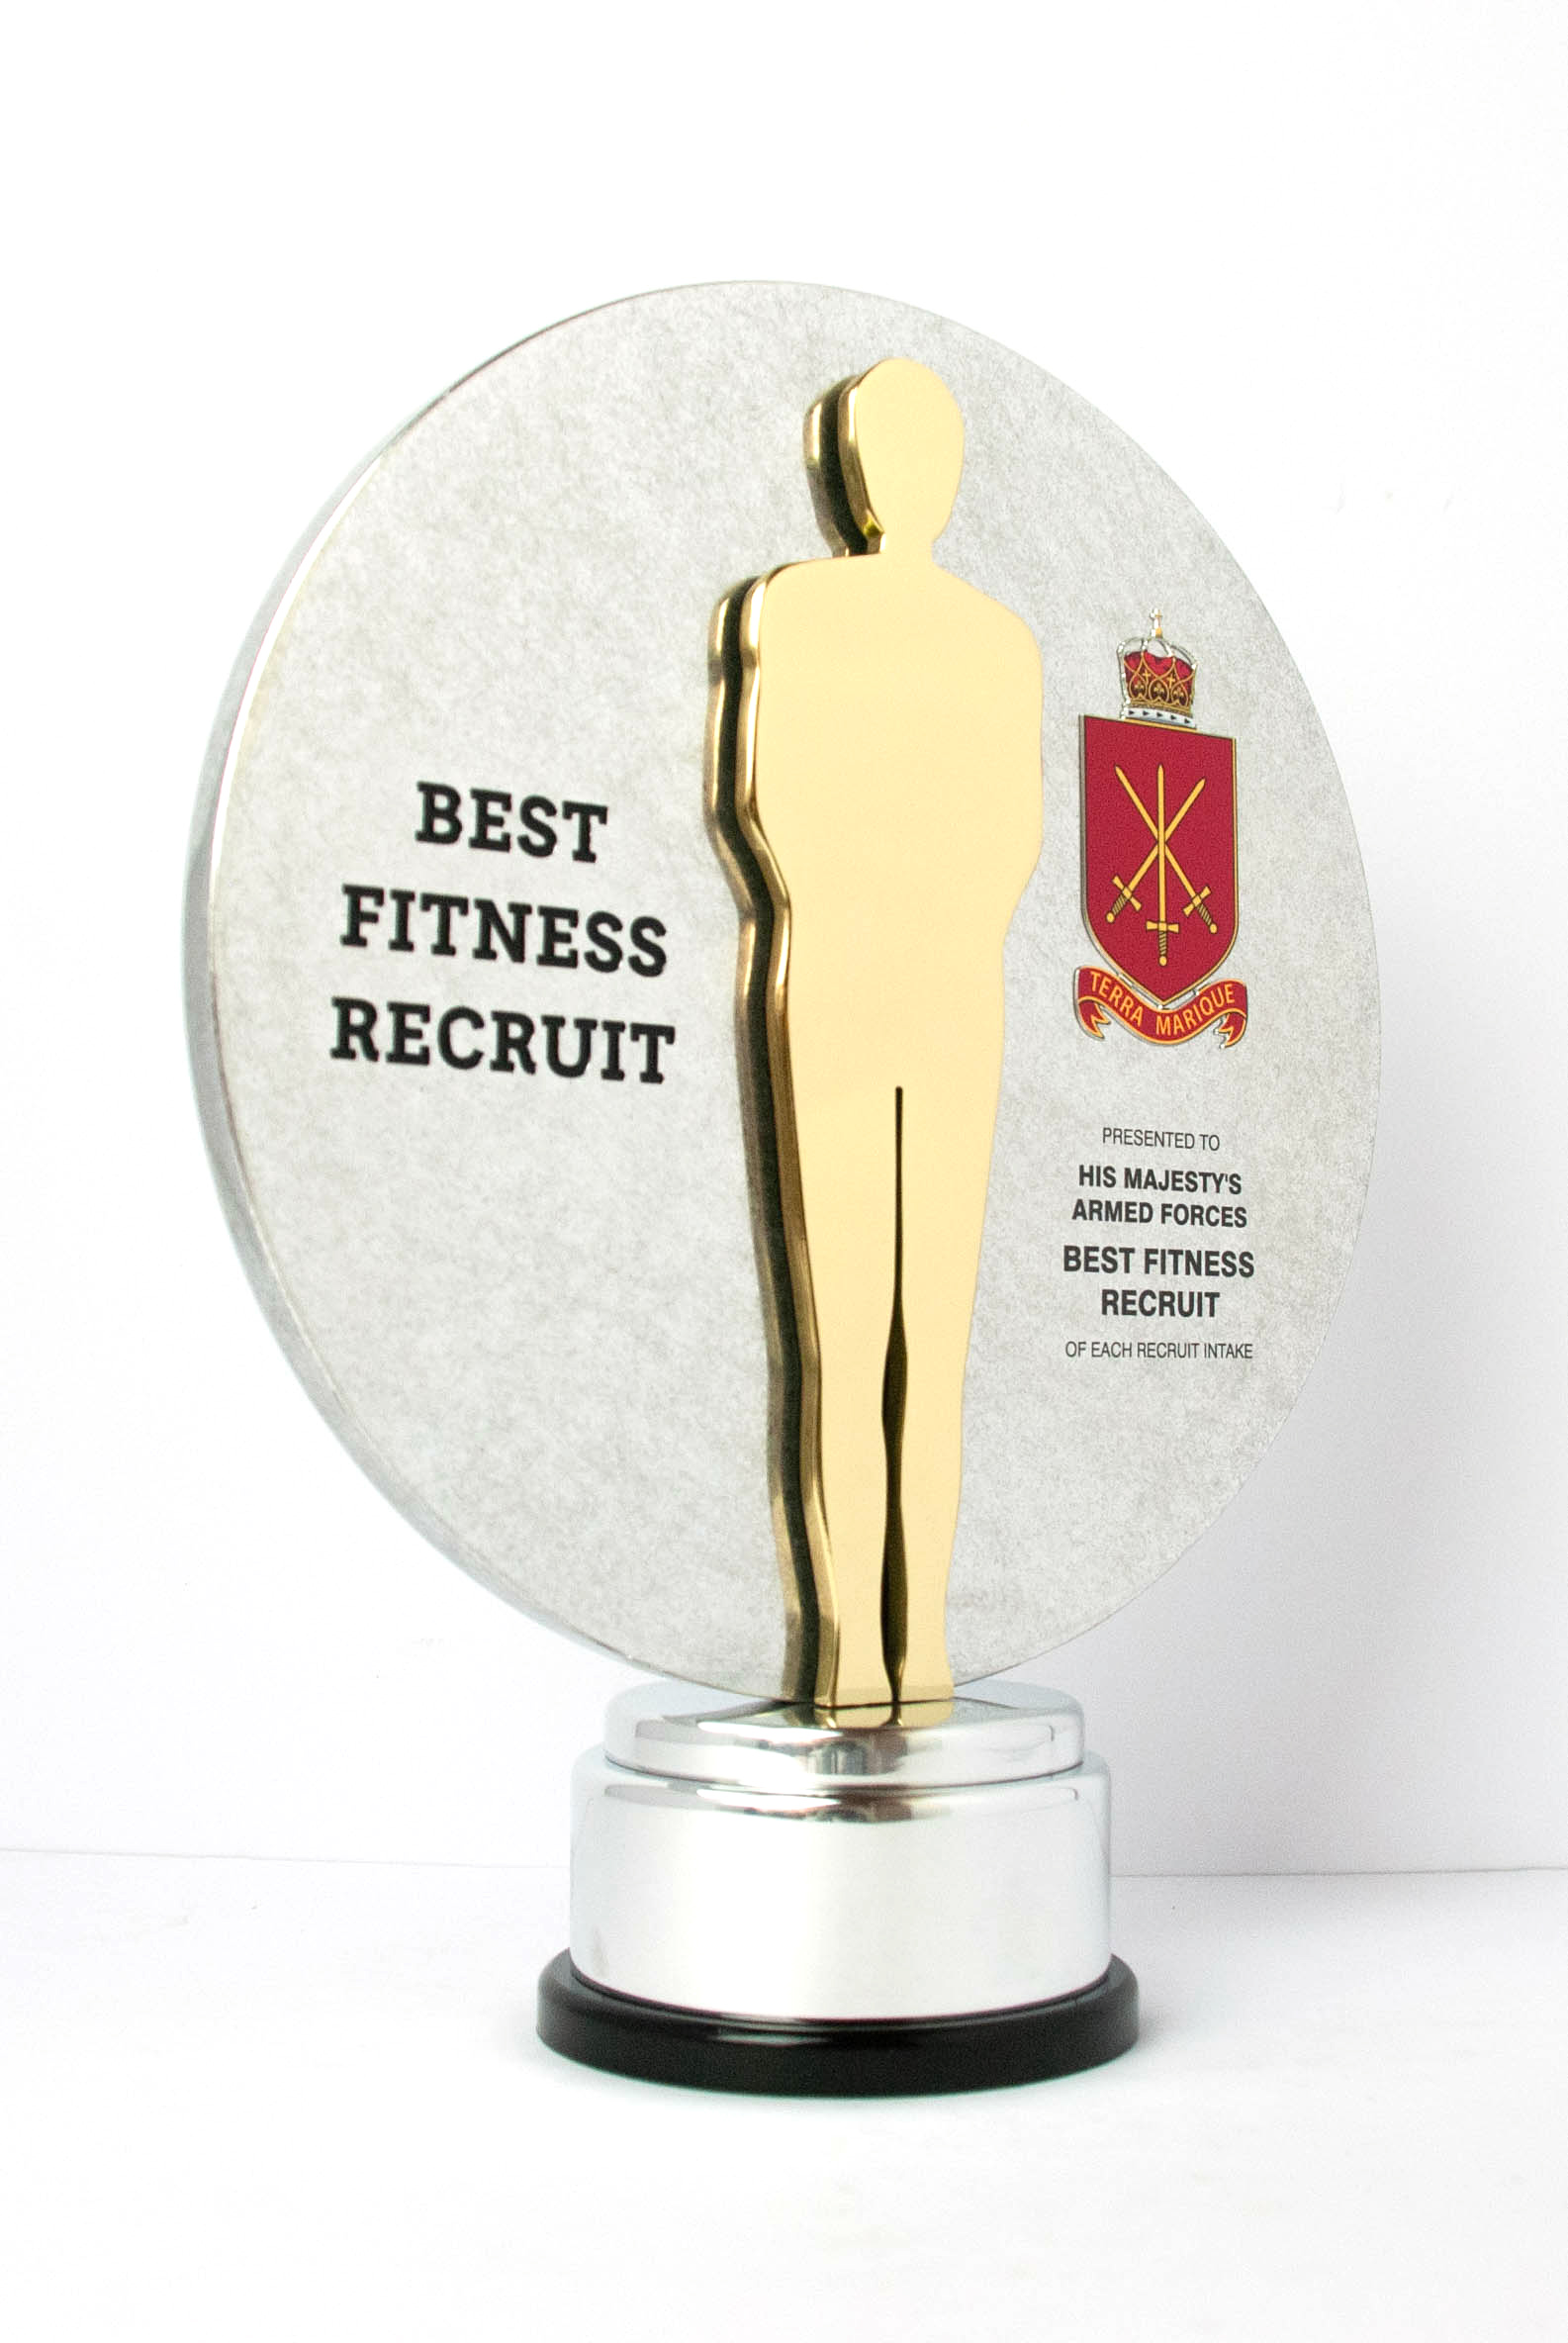 HMAF Best Fitness Recruit Bespoke Award